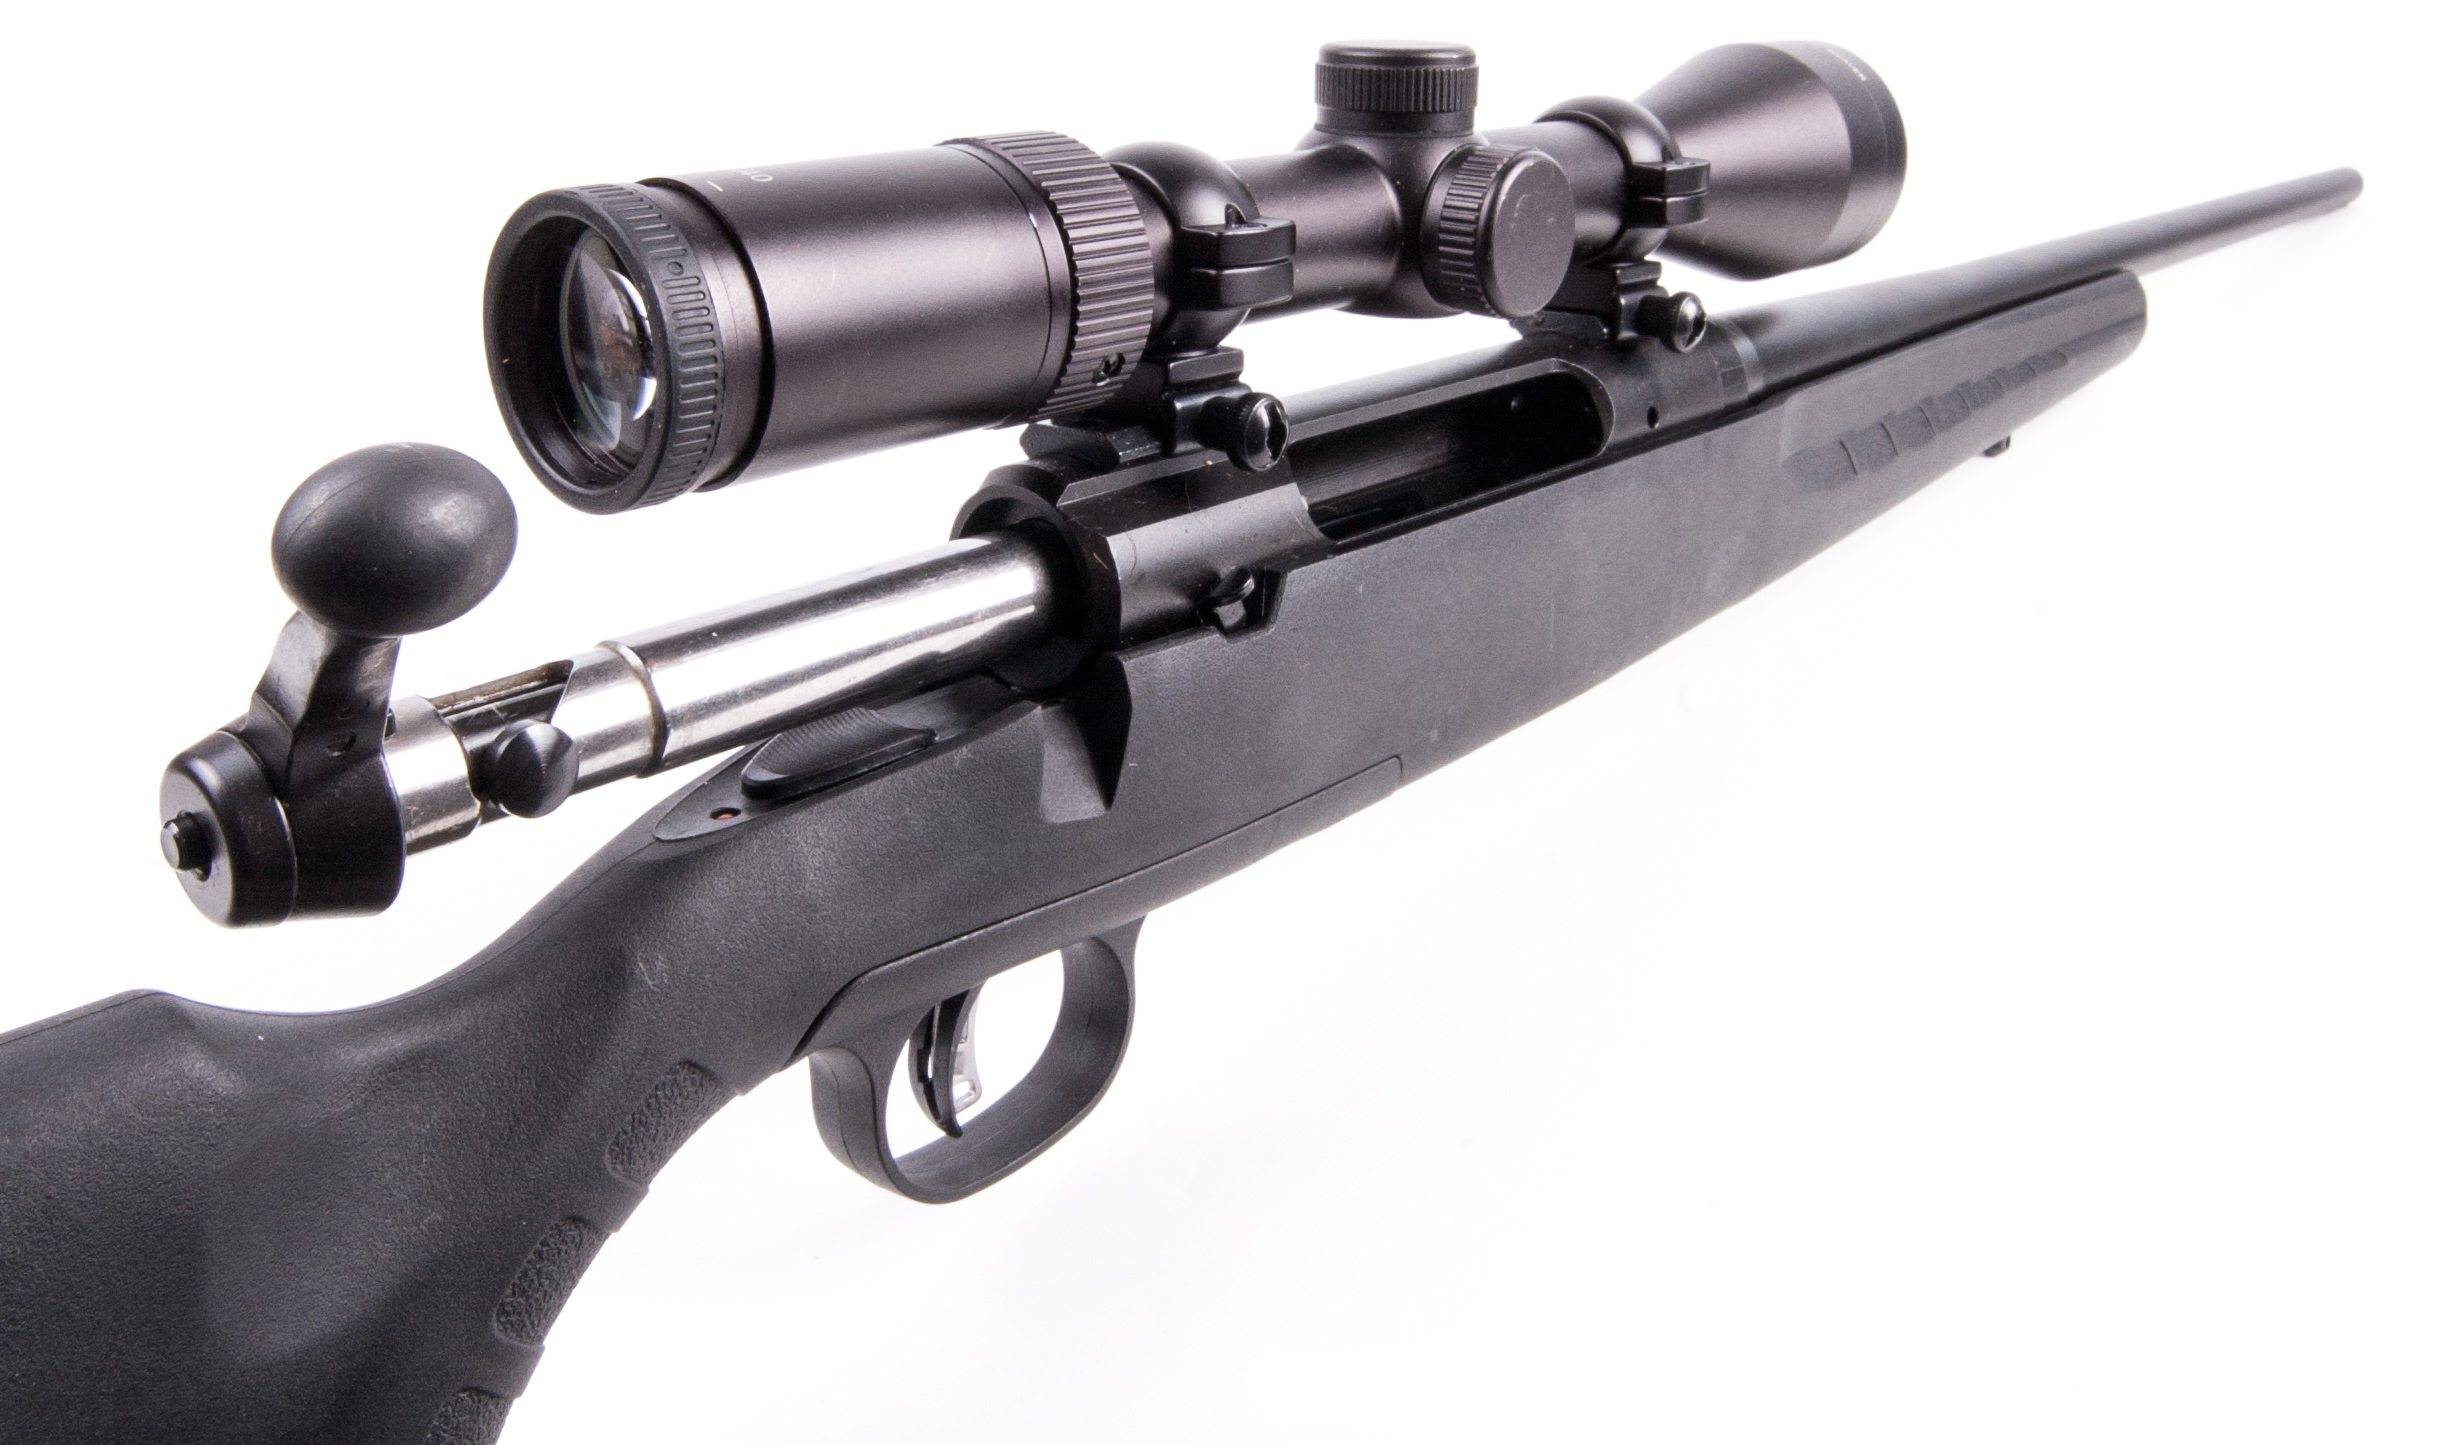 What is the Best Sniper/Precision Rifle for Beginners? (in 2019)